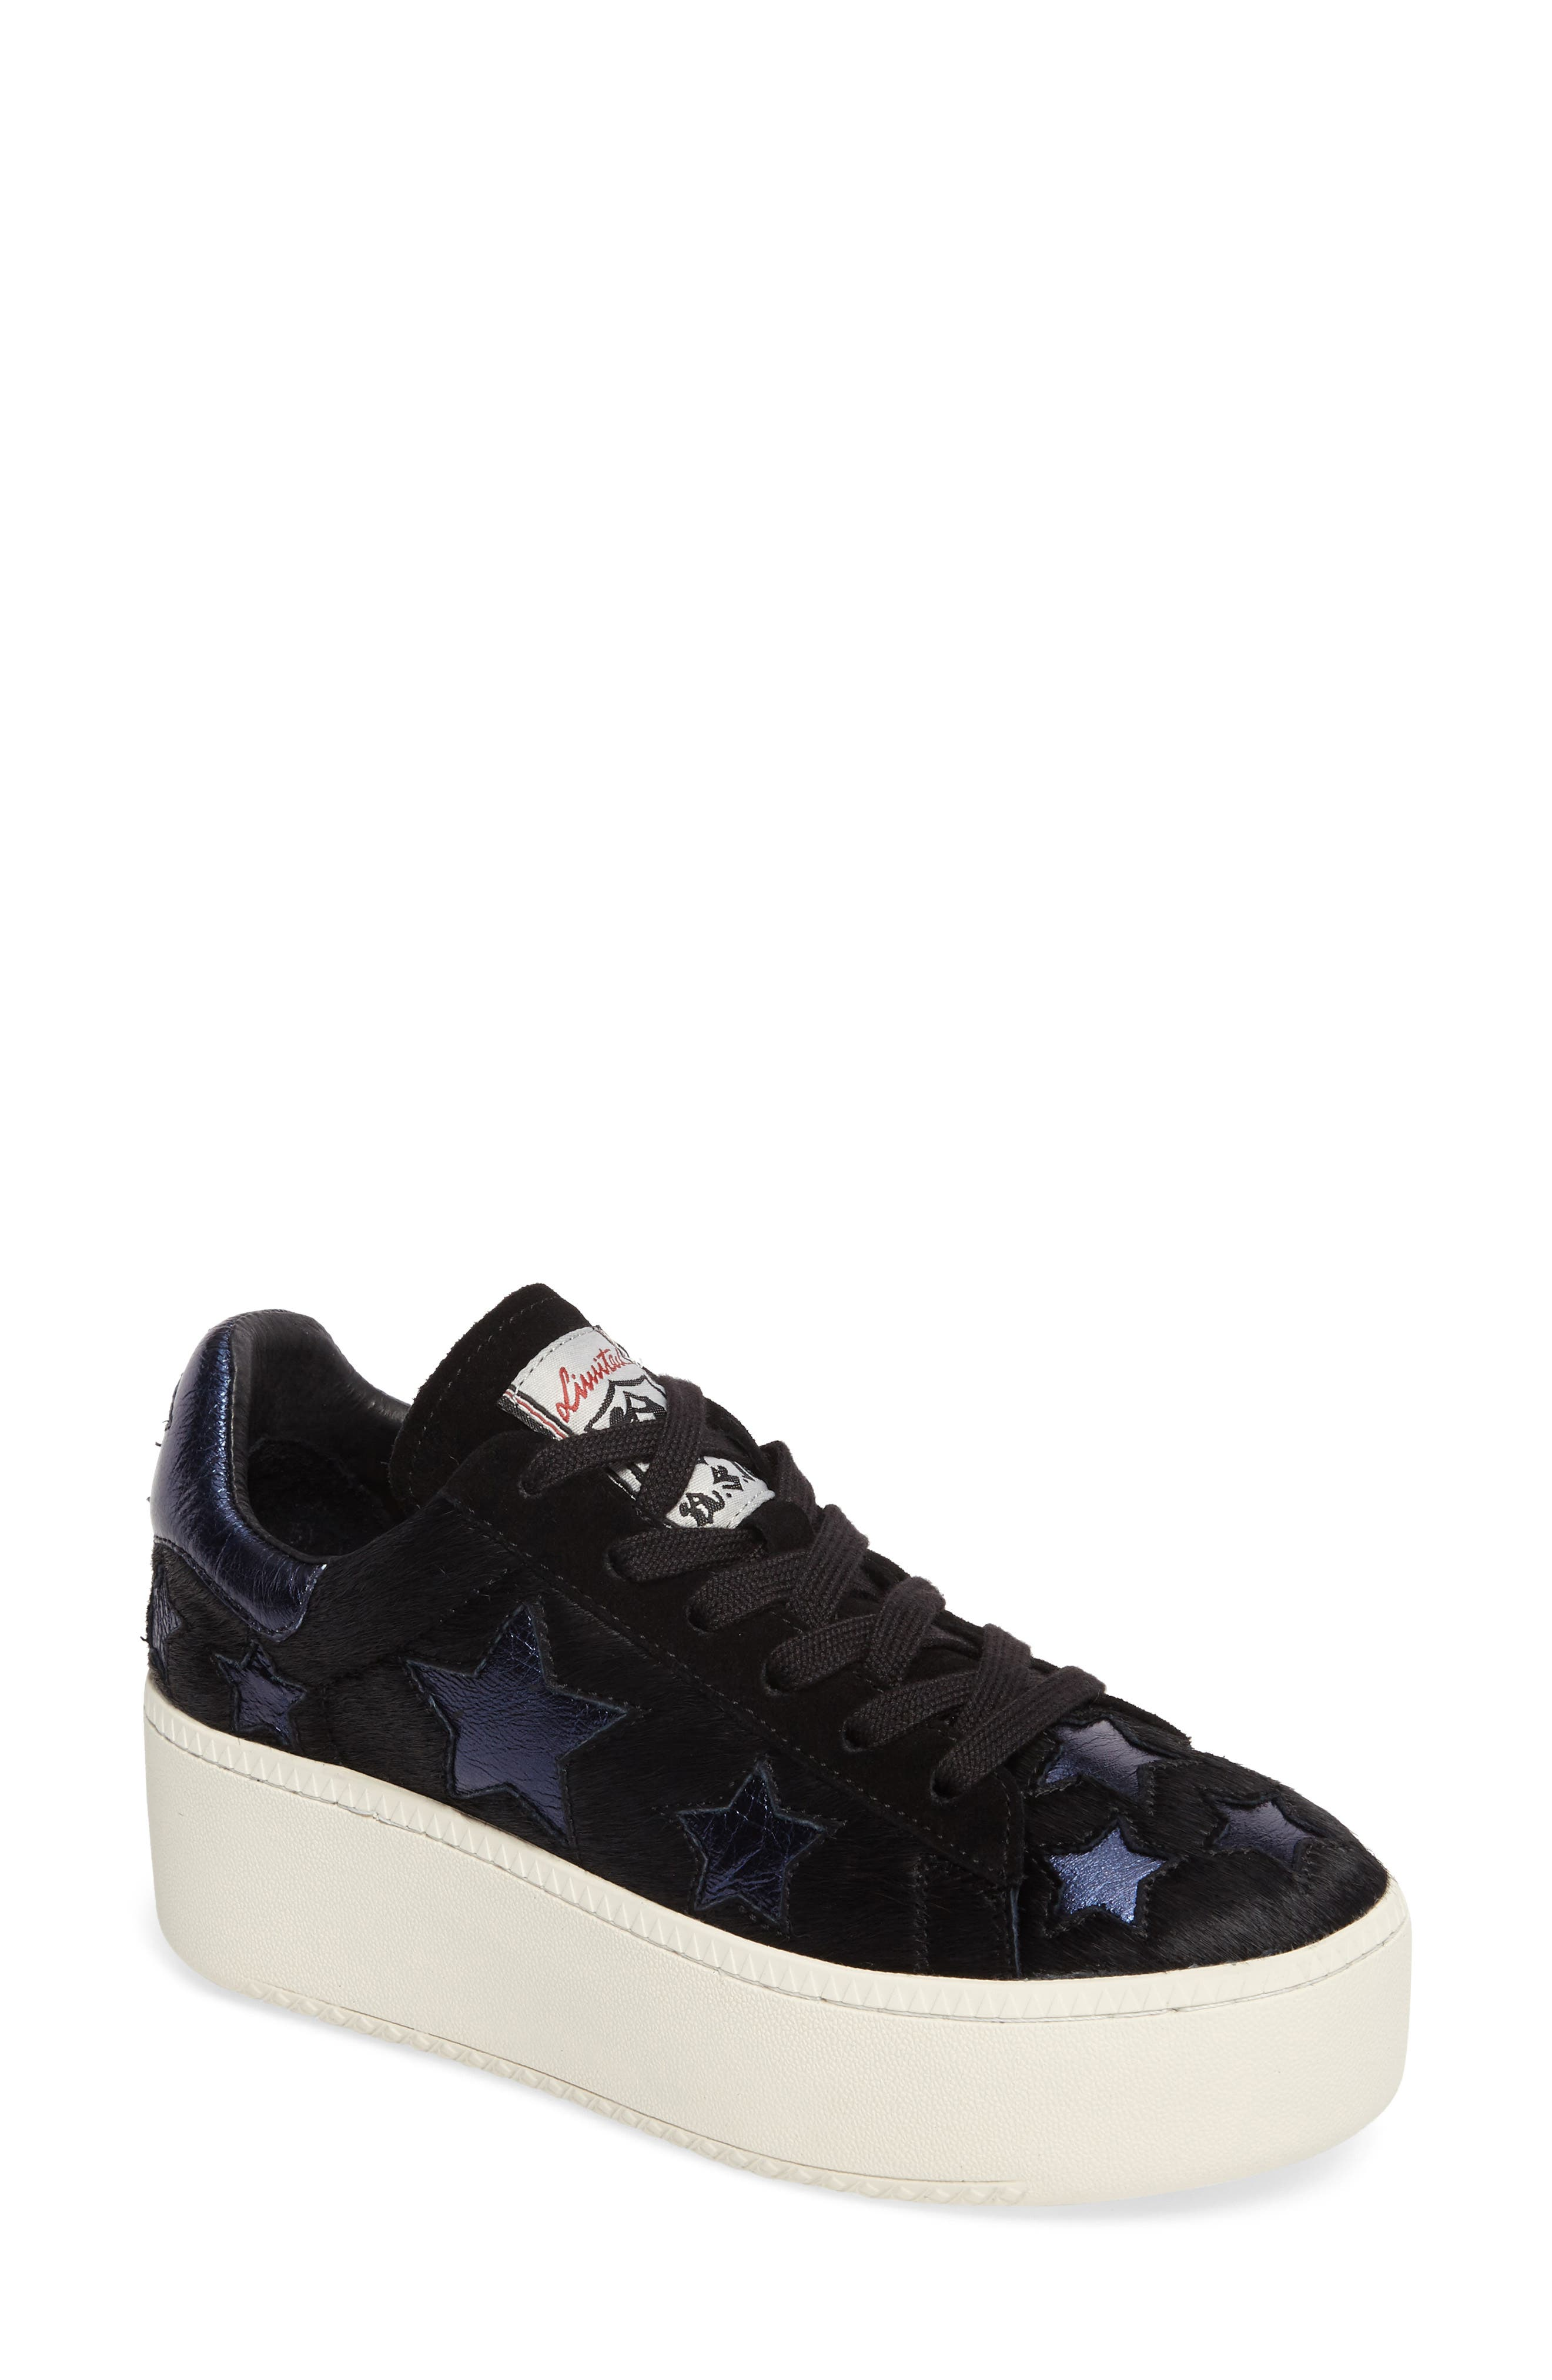 Cult Star Calf Hair Sneaker,                         Main,                         color, Black/ Midnight Leather